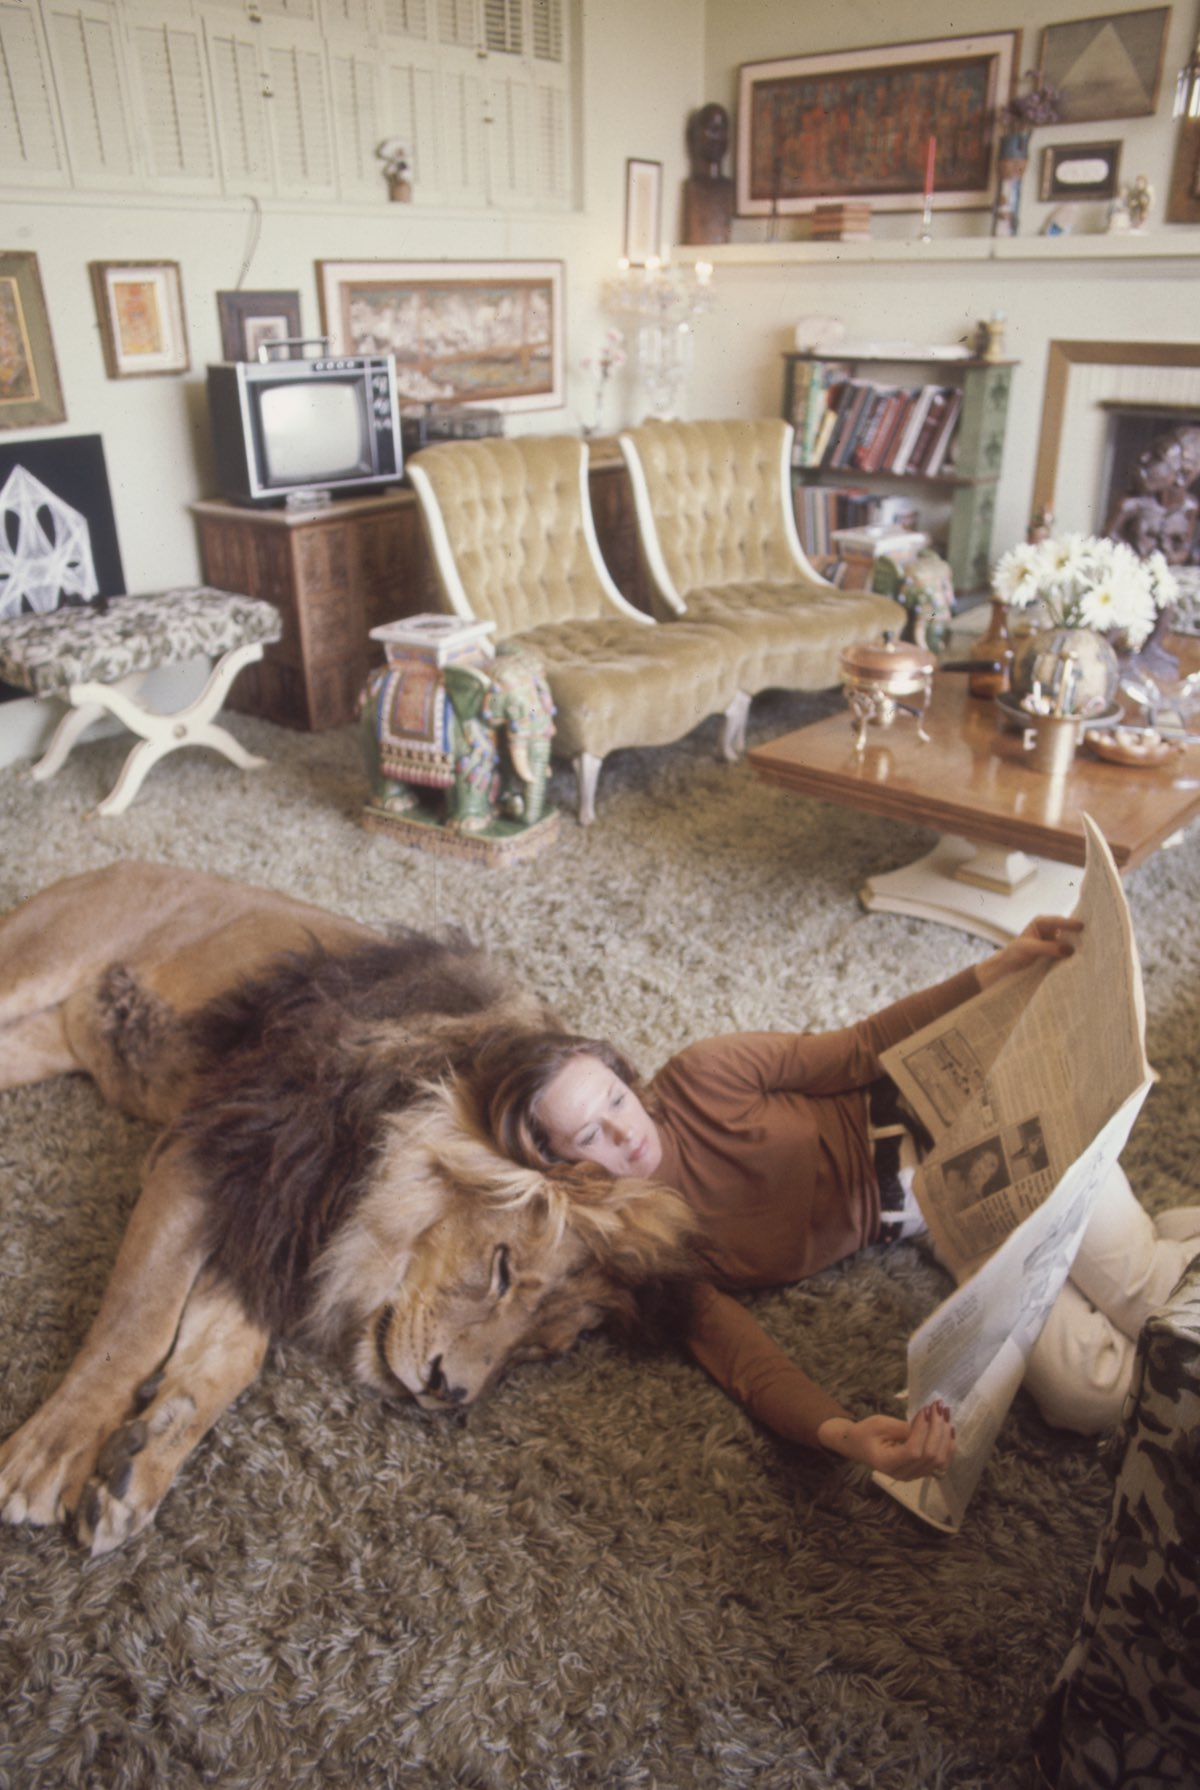 Subject: Tippi Hedren reading a newspaper with Neil the pet lion laying by her. Sherman Oaks, California May 1971 Photographer- Michael Rougier Time Inc Owned Merlin- 1200540